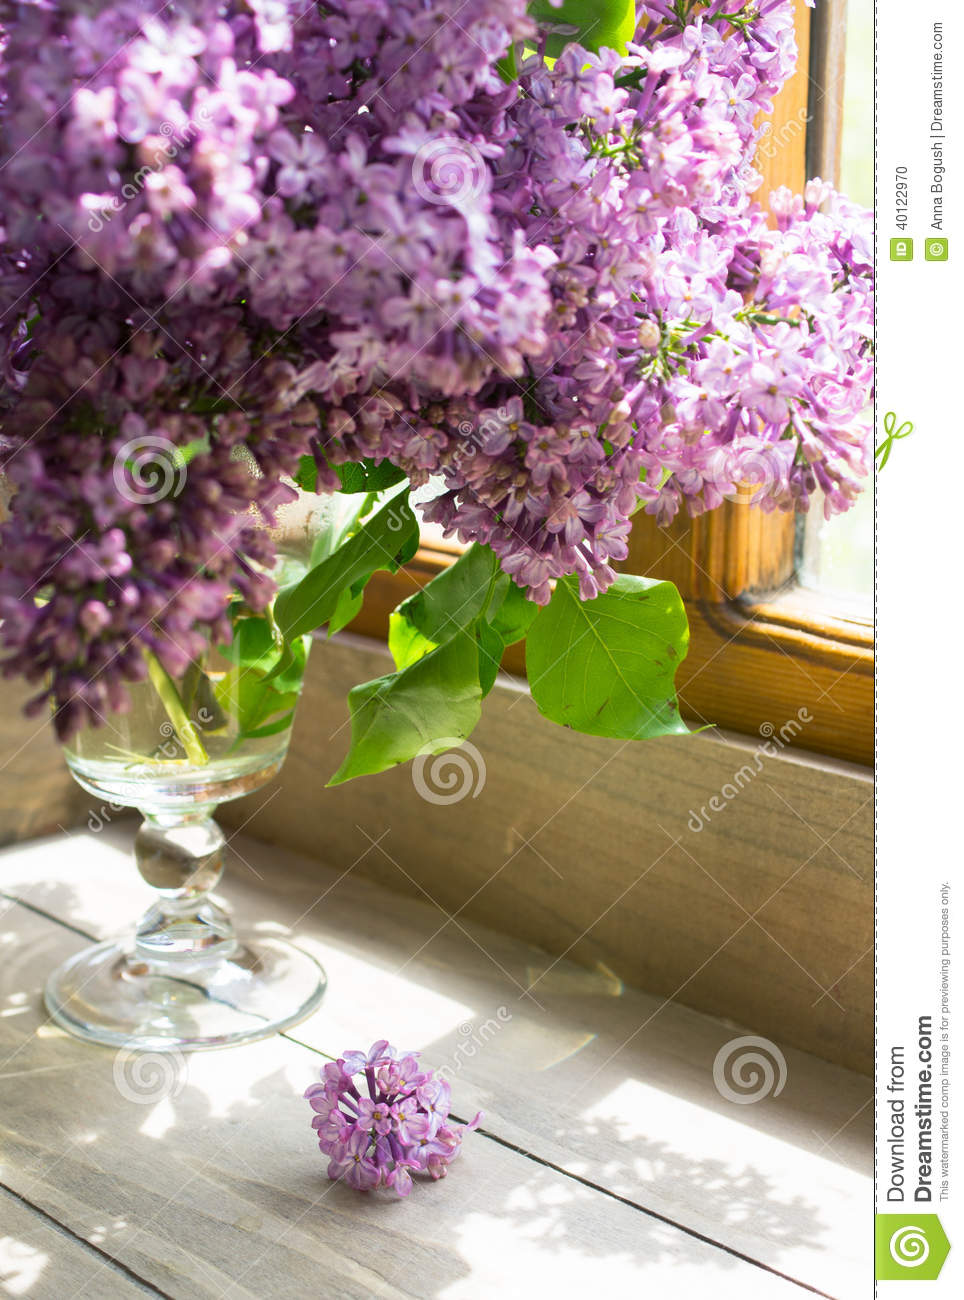 lilac flowers in the vase stock photo image 40122970. Black Bedroom Furniture Sets. Home Design Ideas